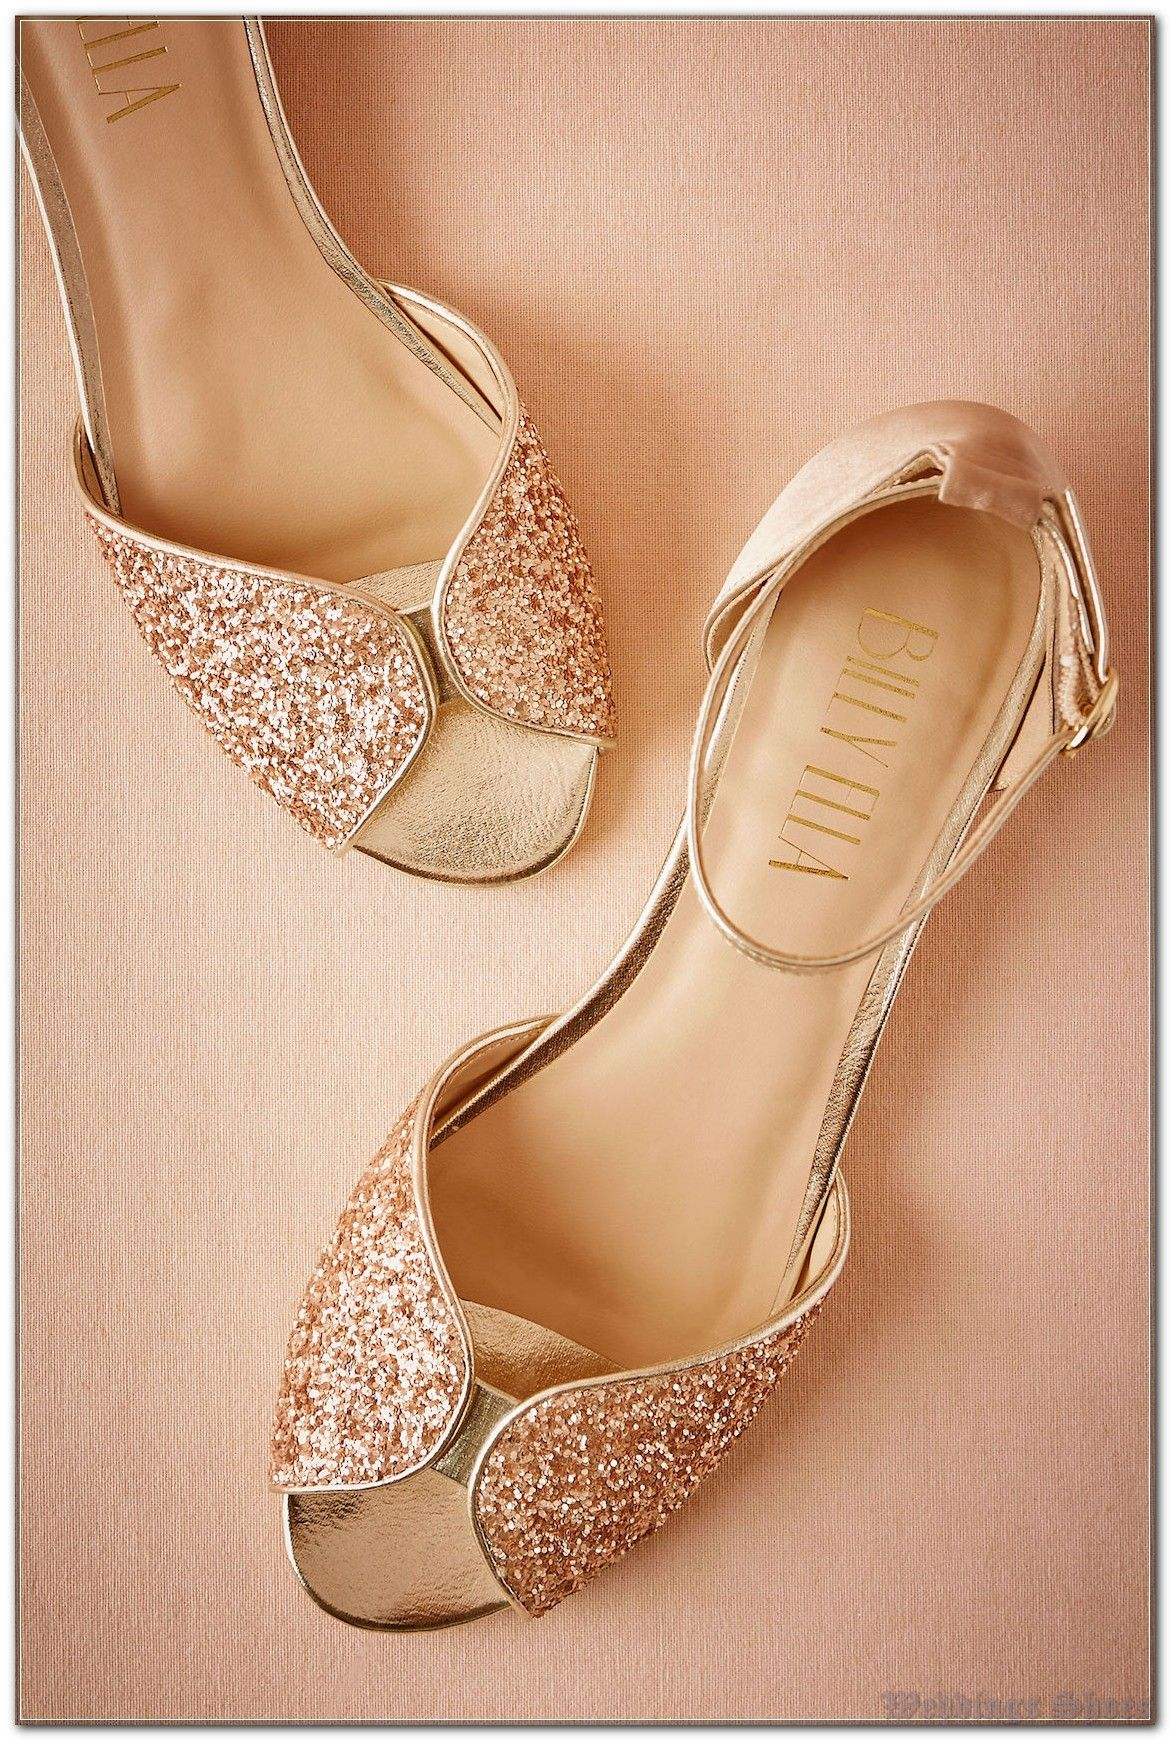 Take The Stress Out Of Wedding Shoes